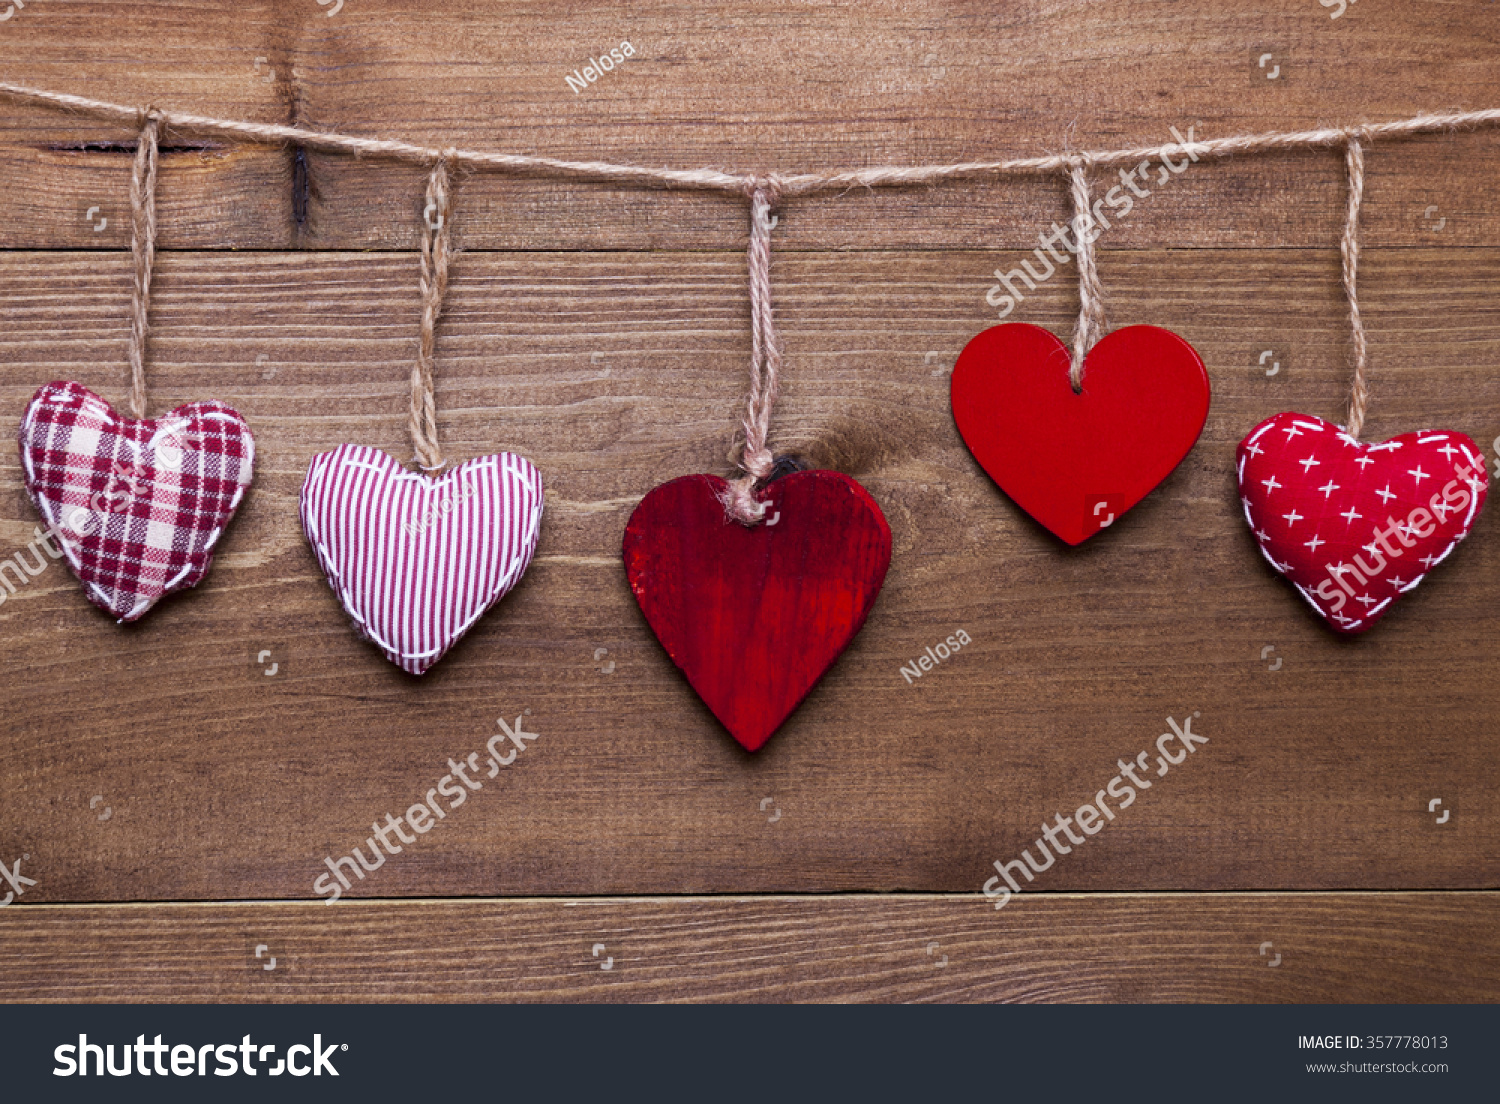 Many Red Hearts Hanging In A Line Brown Wooden Background Romantic